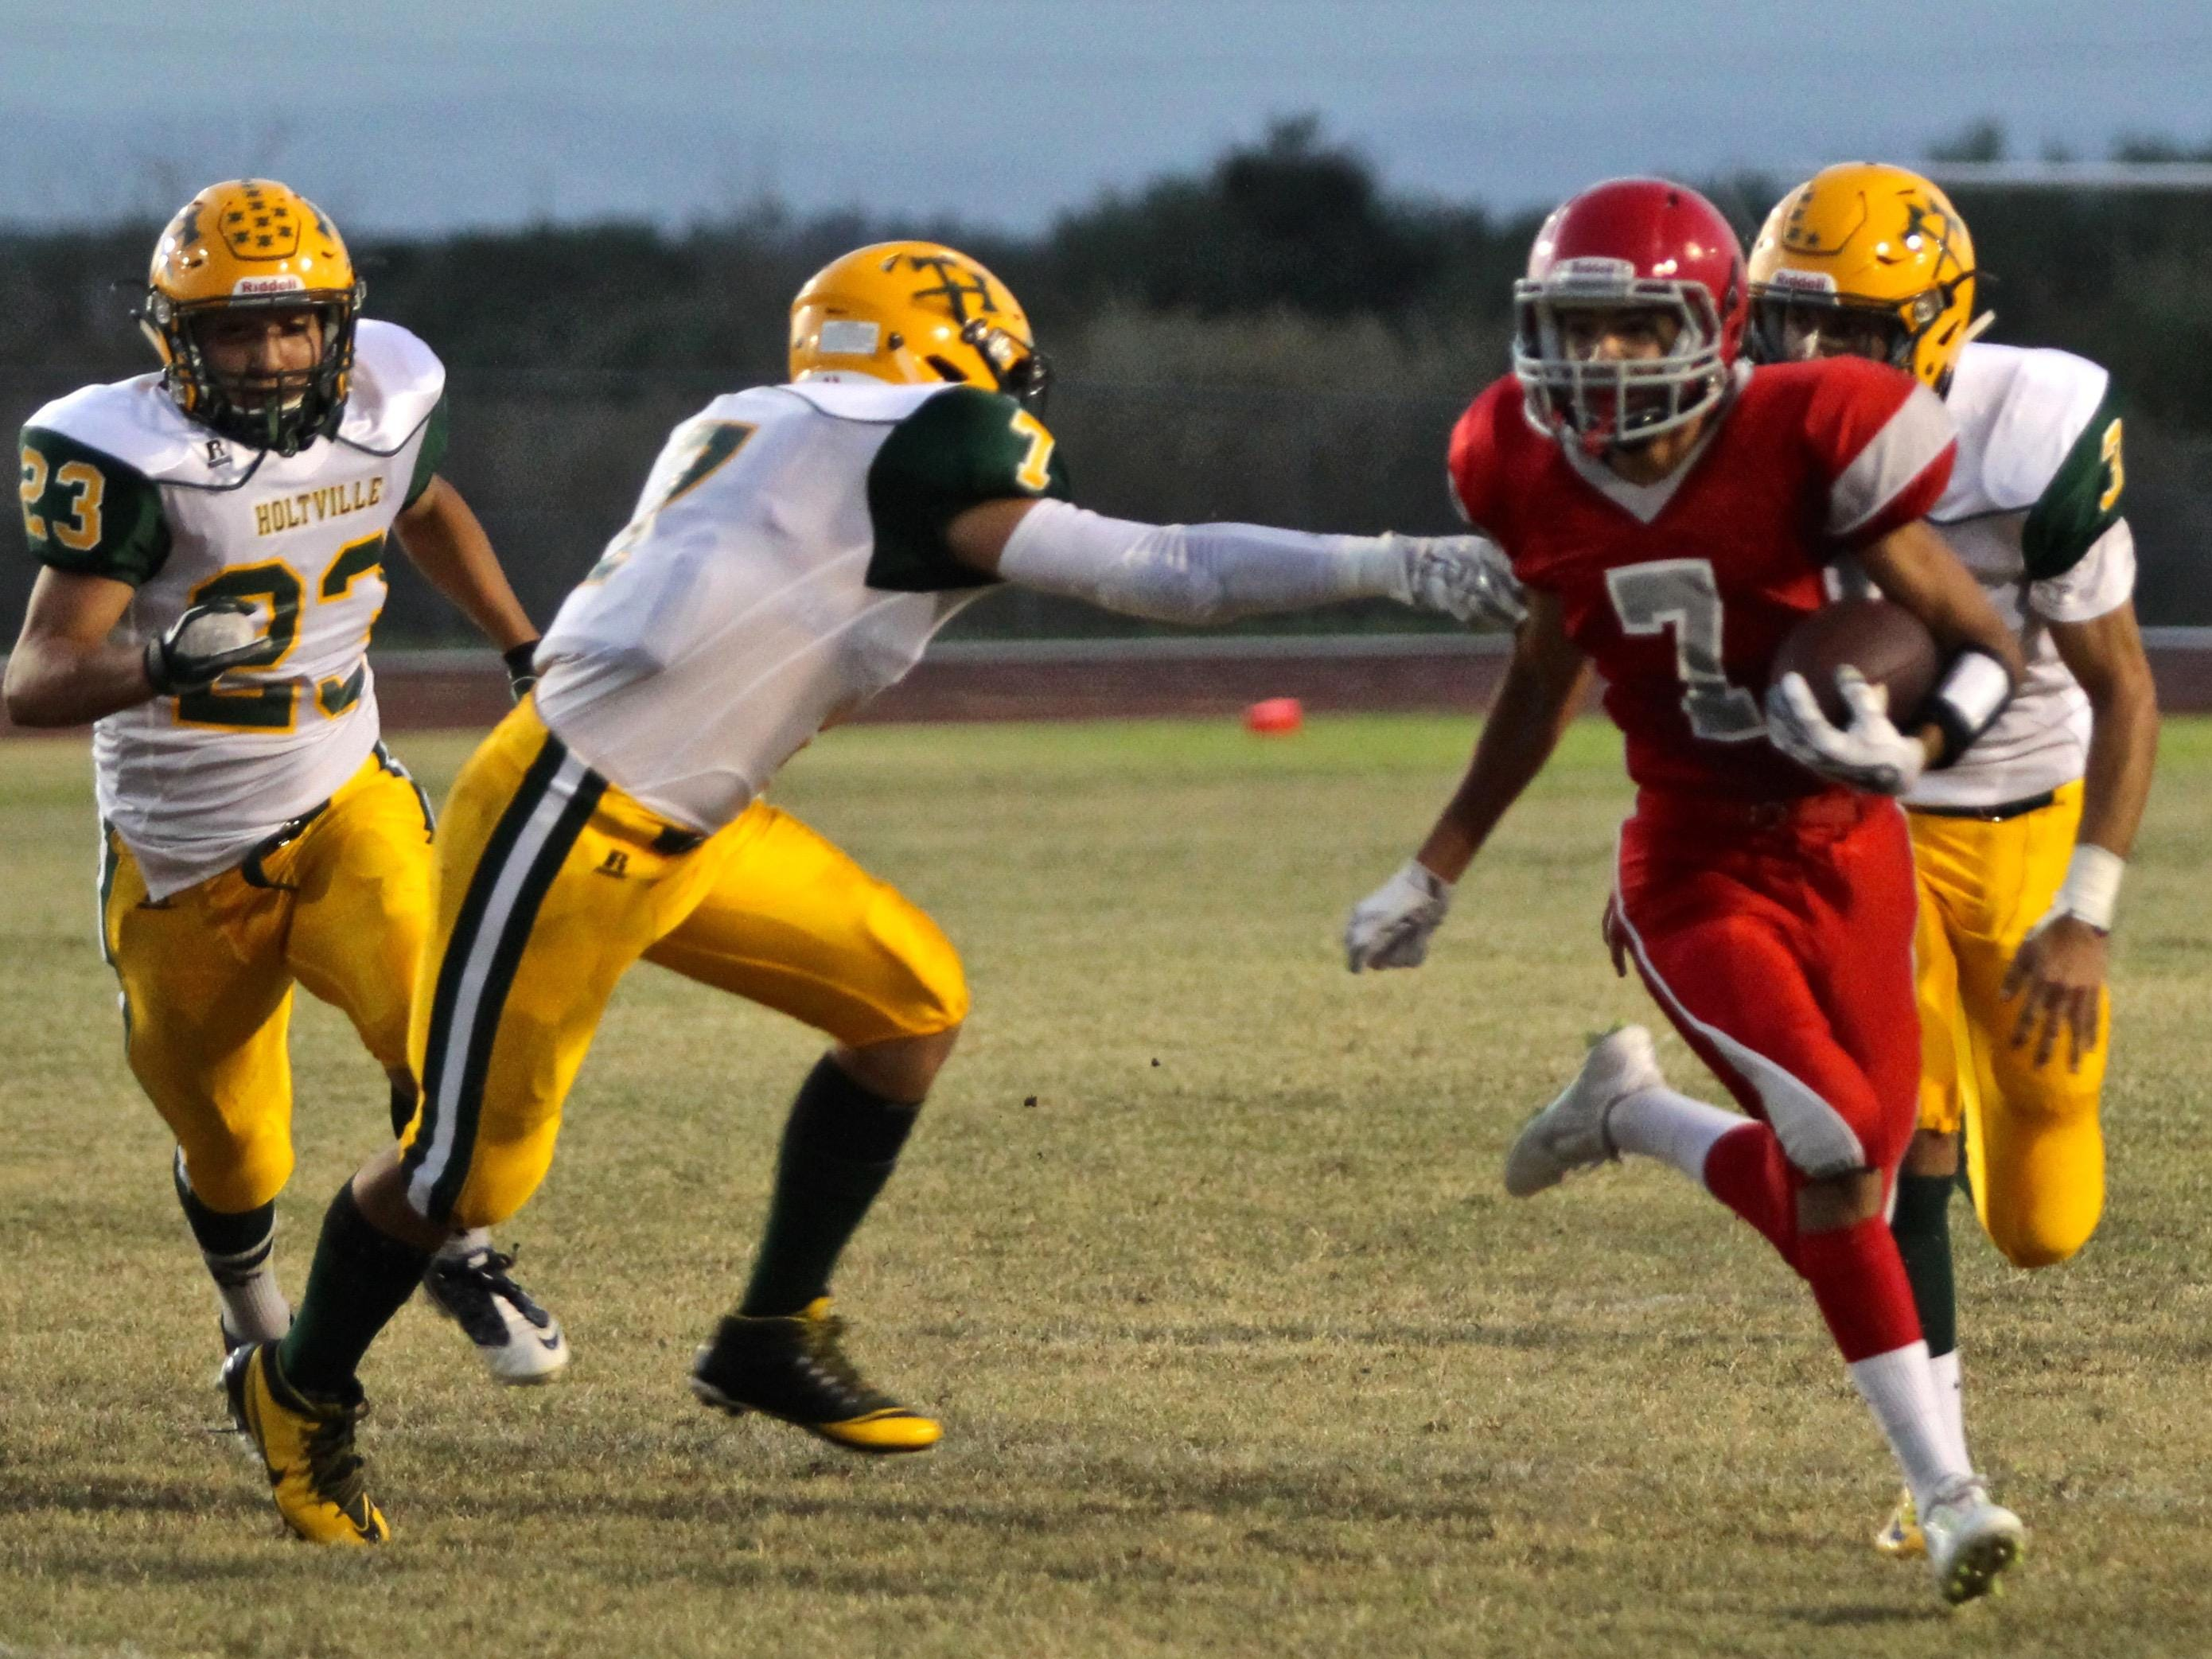 Desert Mirage's Jesus Ortiz (7) sprints as he attempts to avoid being tackled by Holtville's Adam Montes (7) in high school football Friday night.